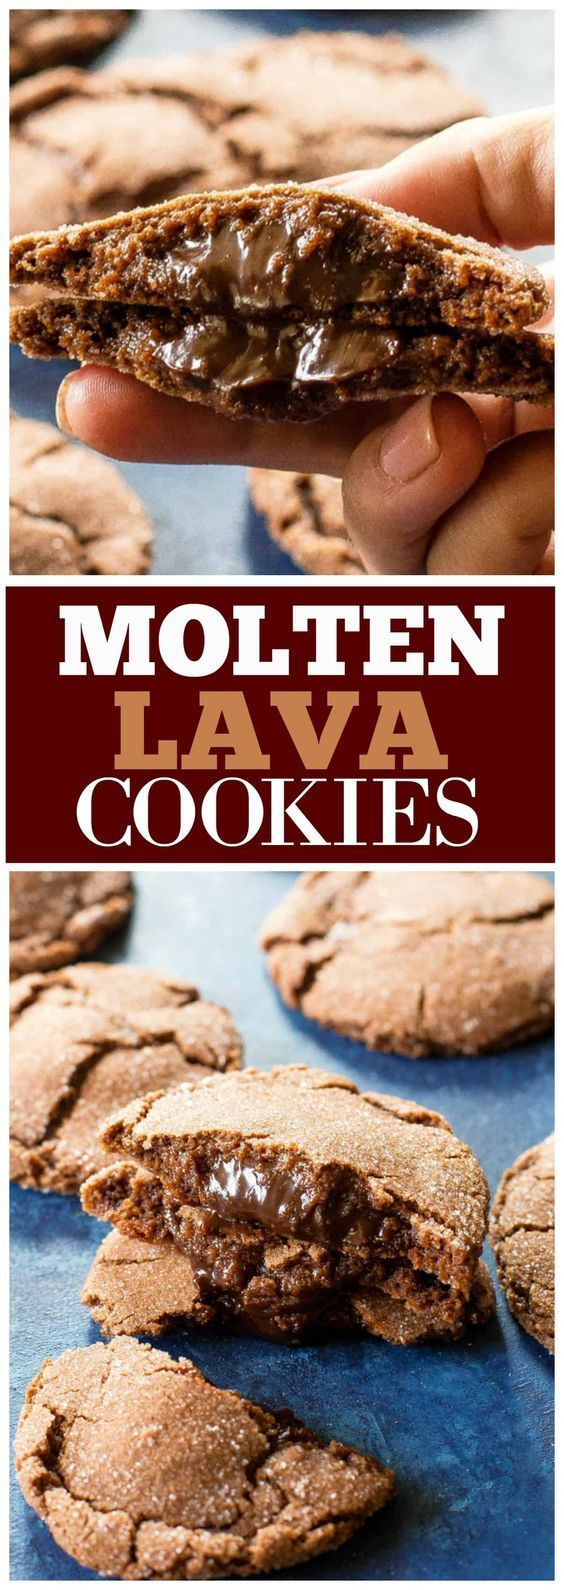 These Molten Lava Cookies have a crisp chocolate cookie on the outside and a gooey chocolate center inside. Chocolate lovers will love this cookie. the-girl-who-ate-everything.com #cookies #chocolate #recipe #cookie #thegirlwhoateeverything